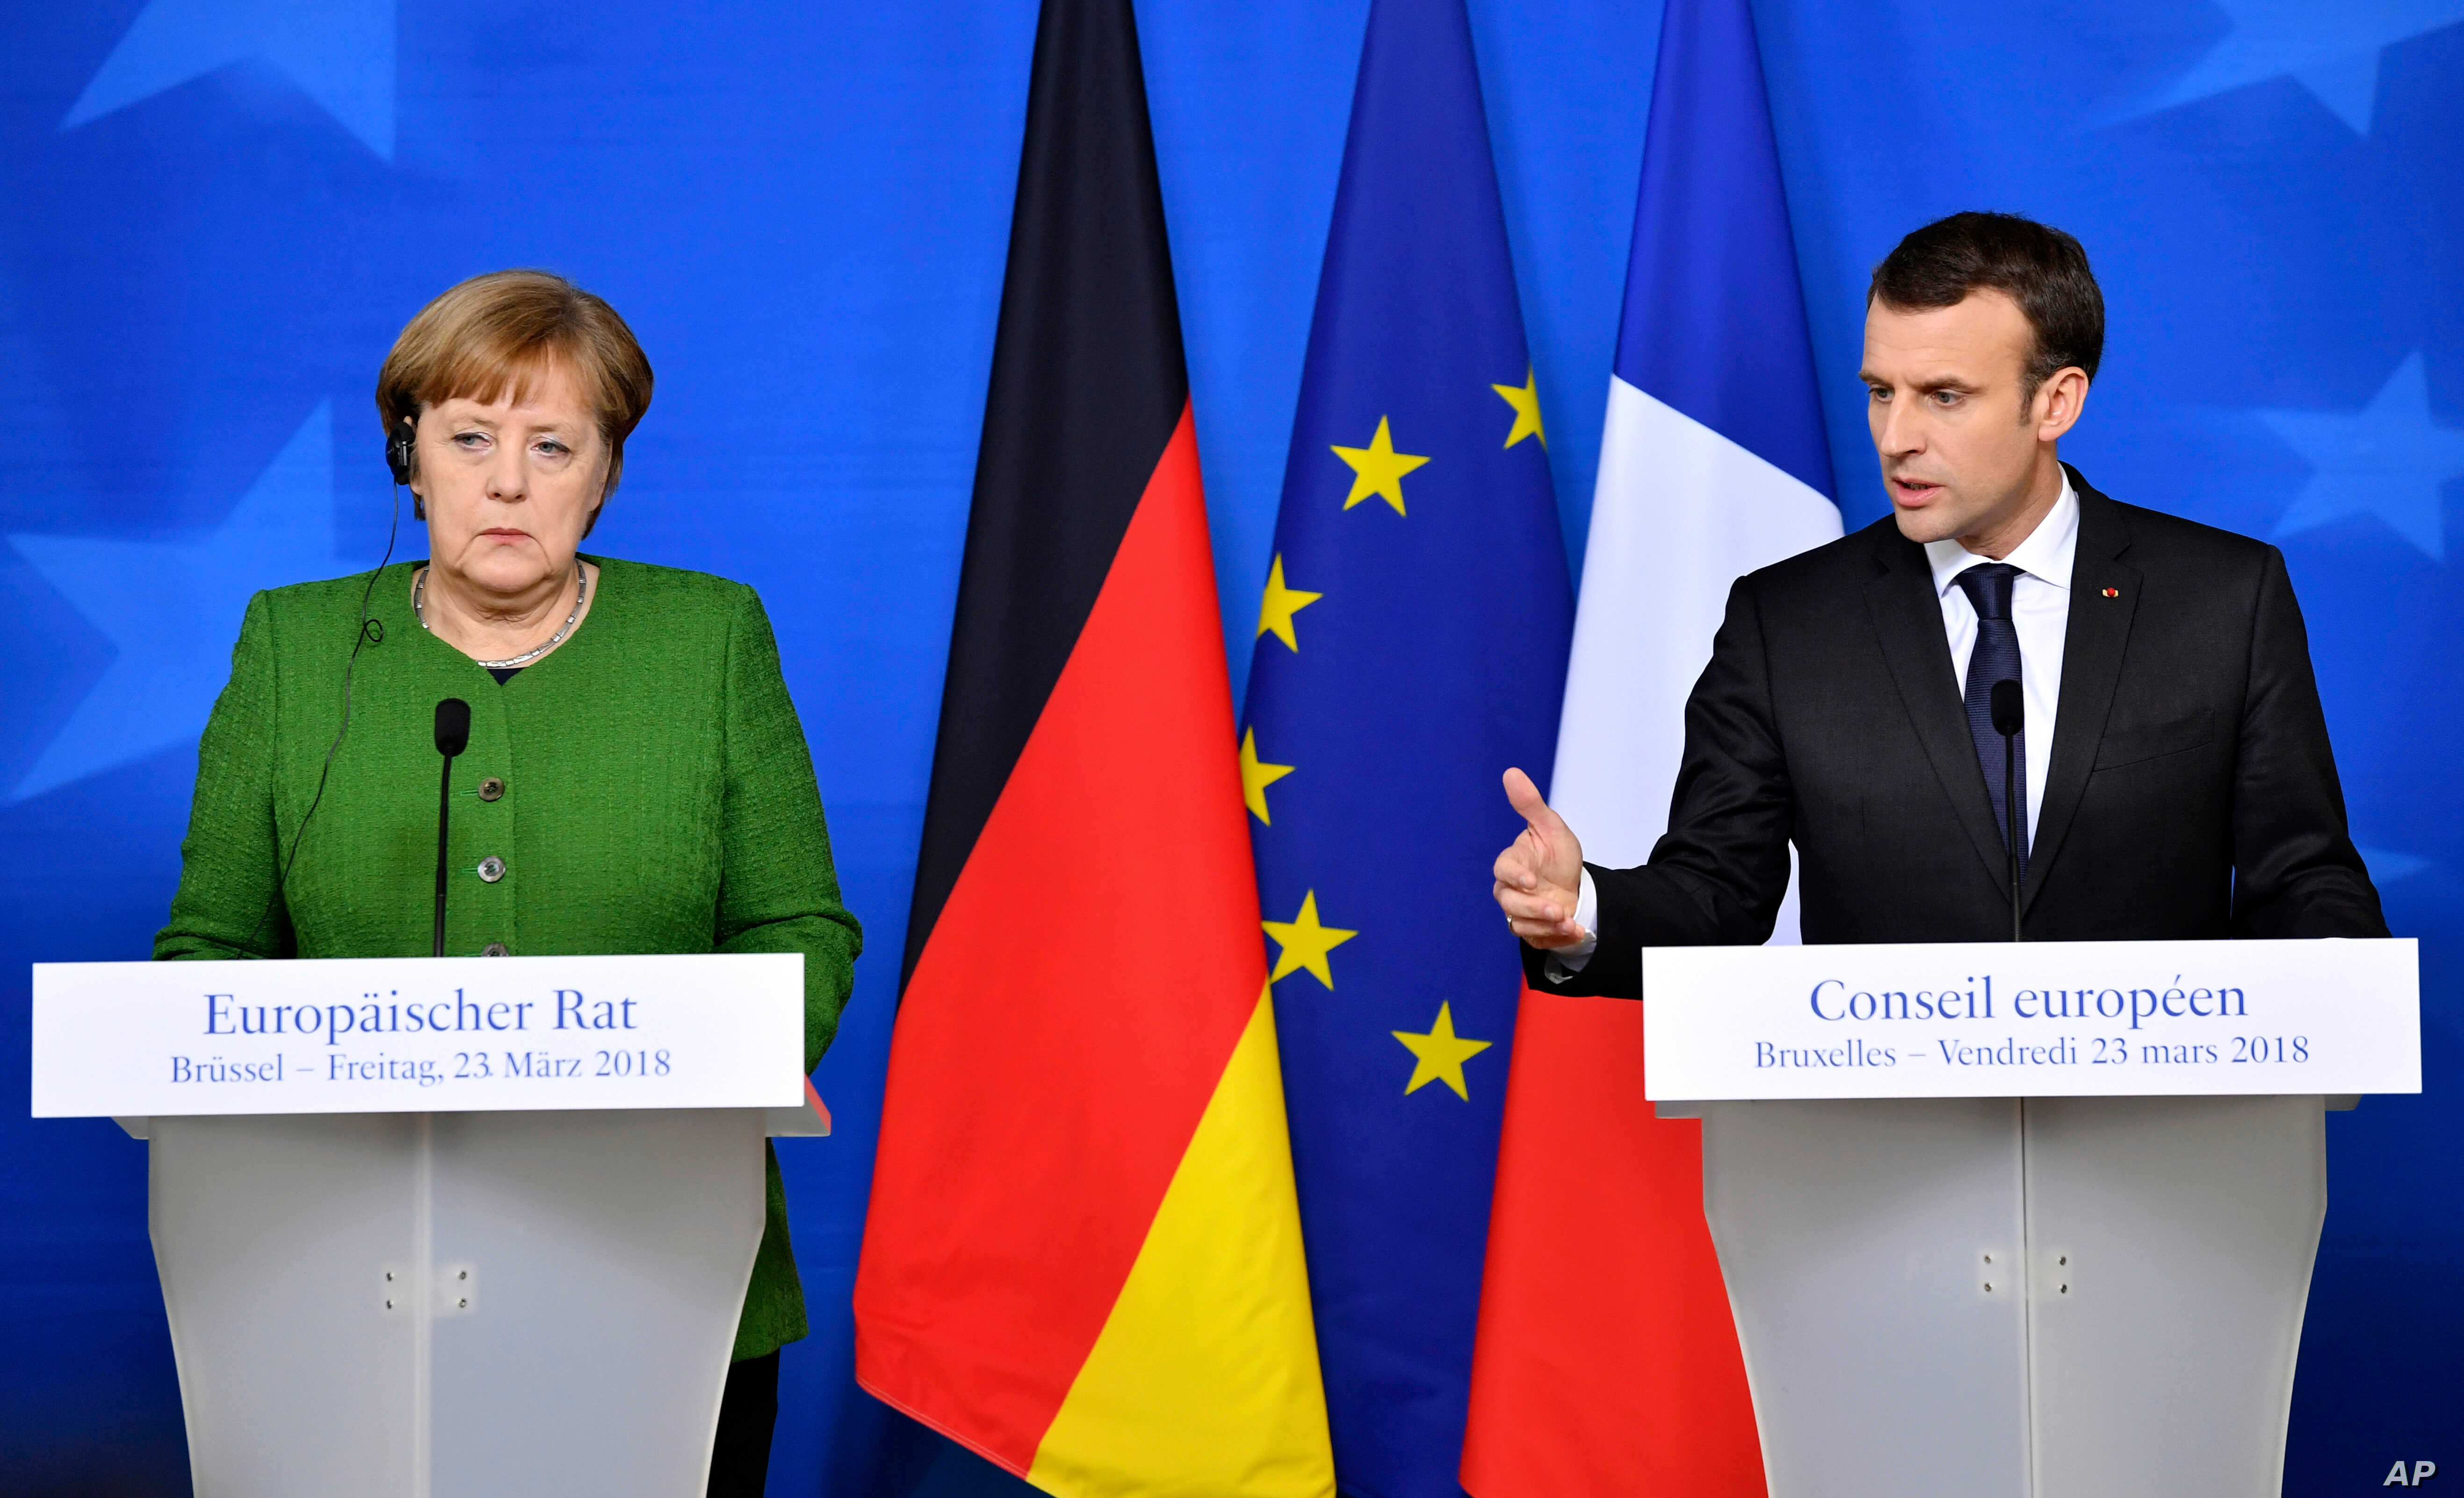 FILE - In this March 23, 2018, file photo, French President Emmanuel Macron, right, and German Chancellor Angela Merkel speak at a news conference in Brussels.